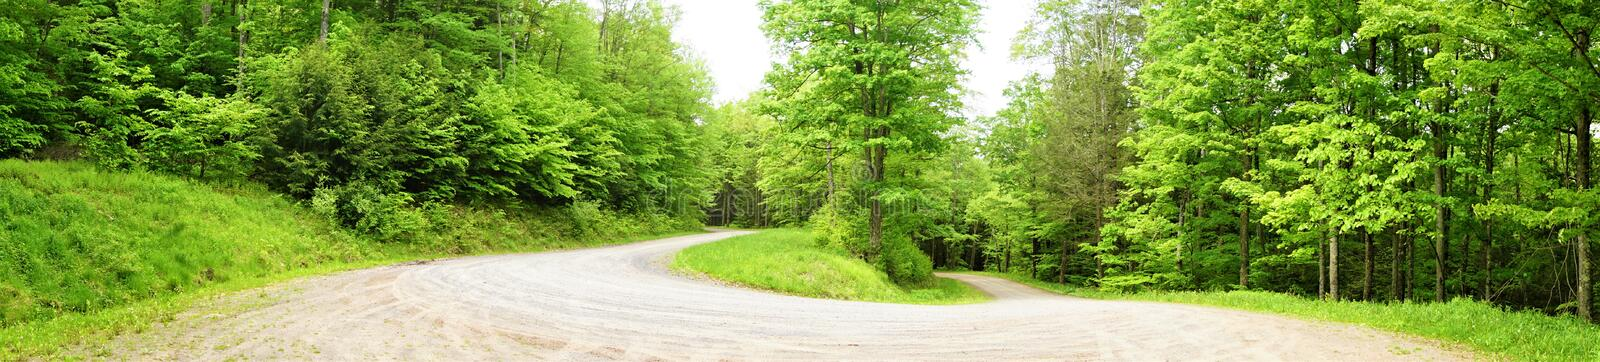 Panorama of hairpin turn road. Unpaved roadway in the woods curves one hundred and eighty degrees around a tight turn going down steep hill.  Inclined through stock photography